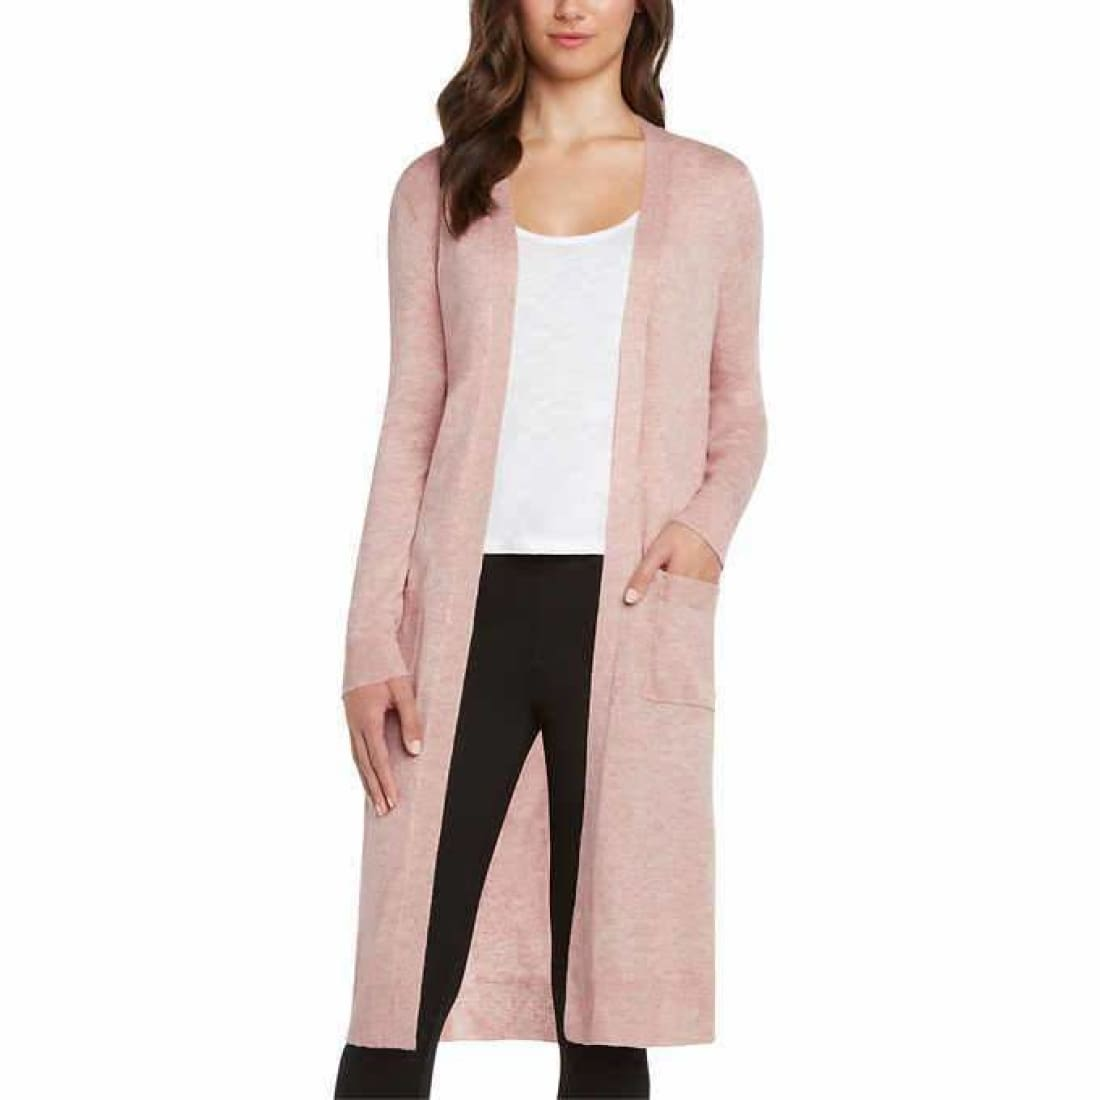 Matty M Ladies Open Front Cardigan Duster Xl / Pink Cardigan Duster